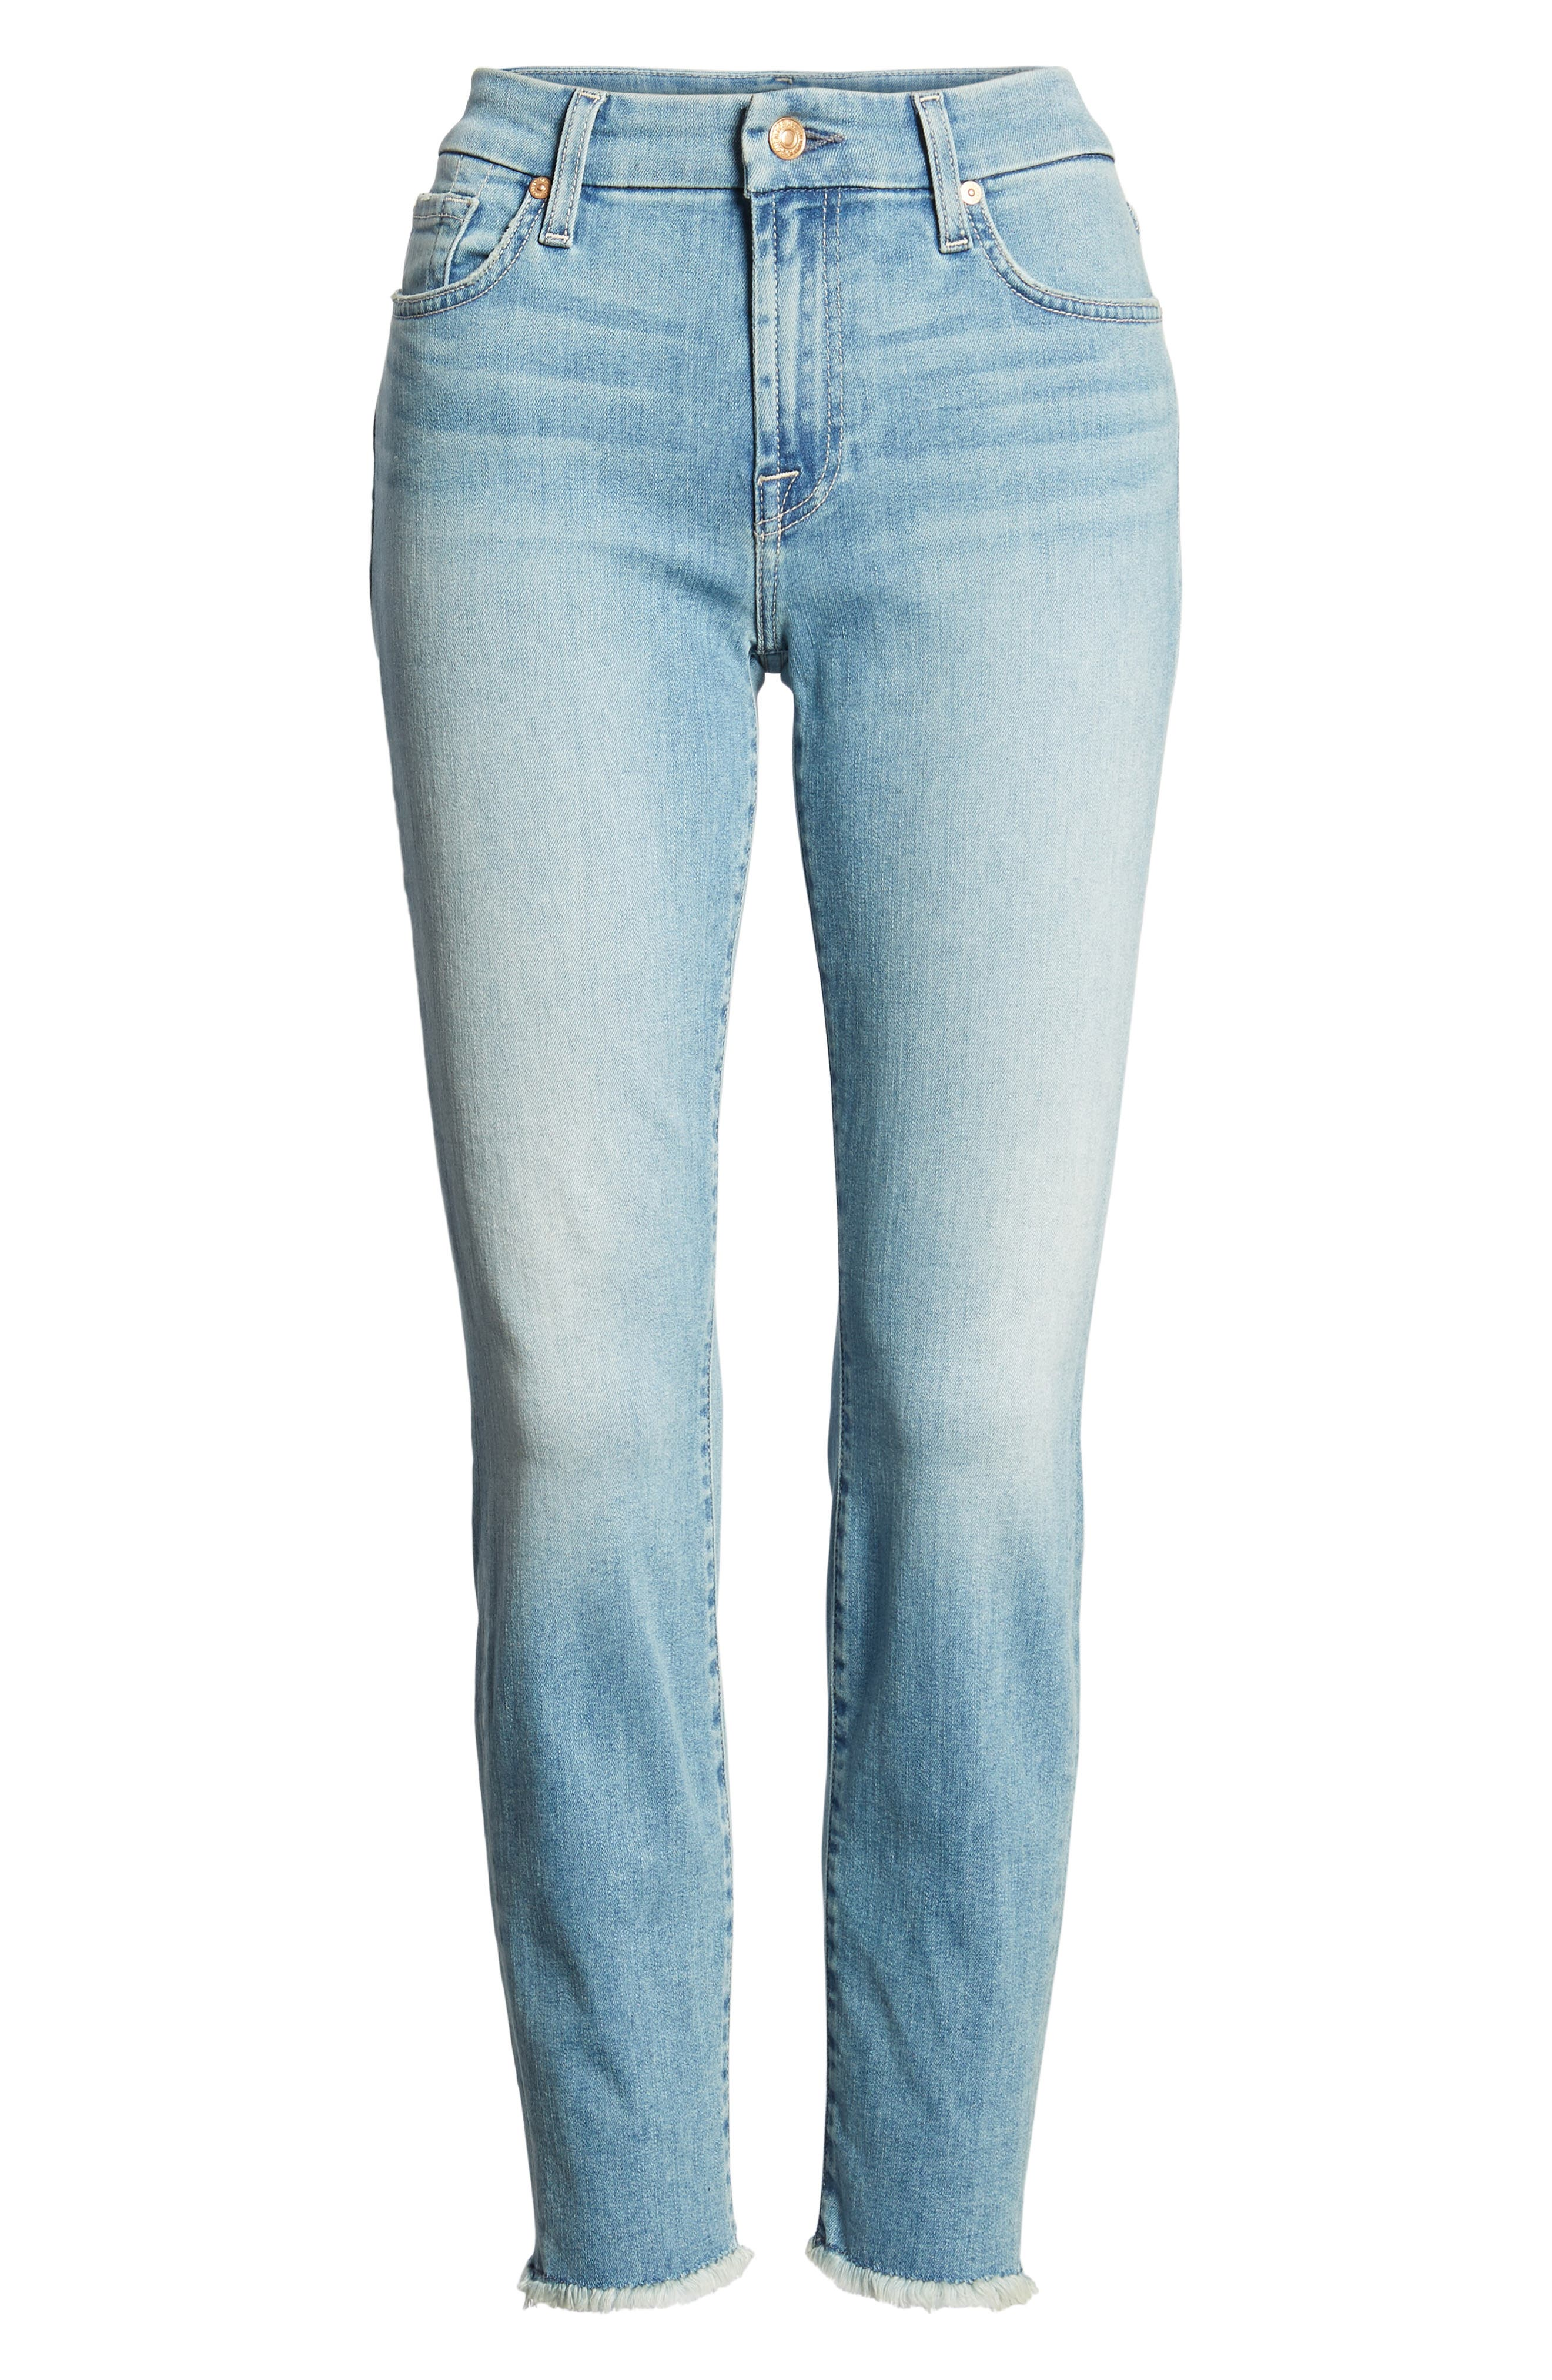 Kimmie Crop Straight Leg Jeans,                             Alternate thumbnail 7, color,                             Desert Heights